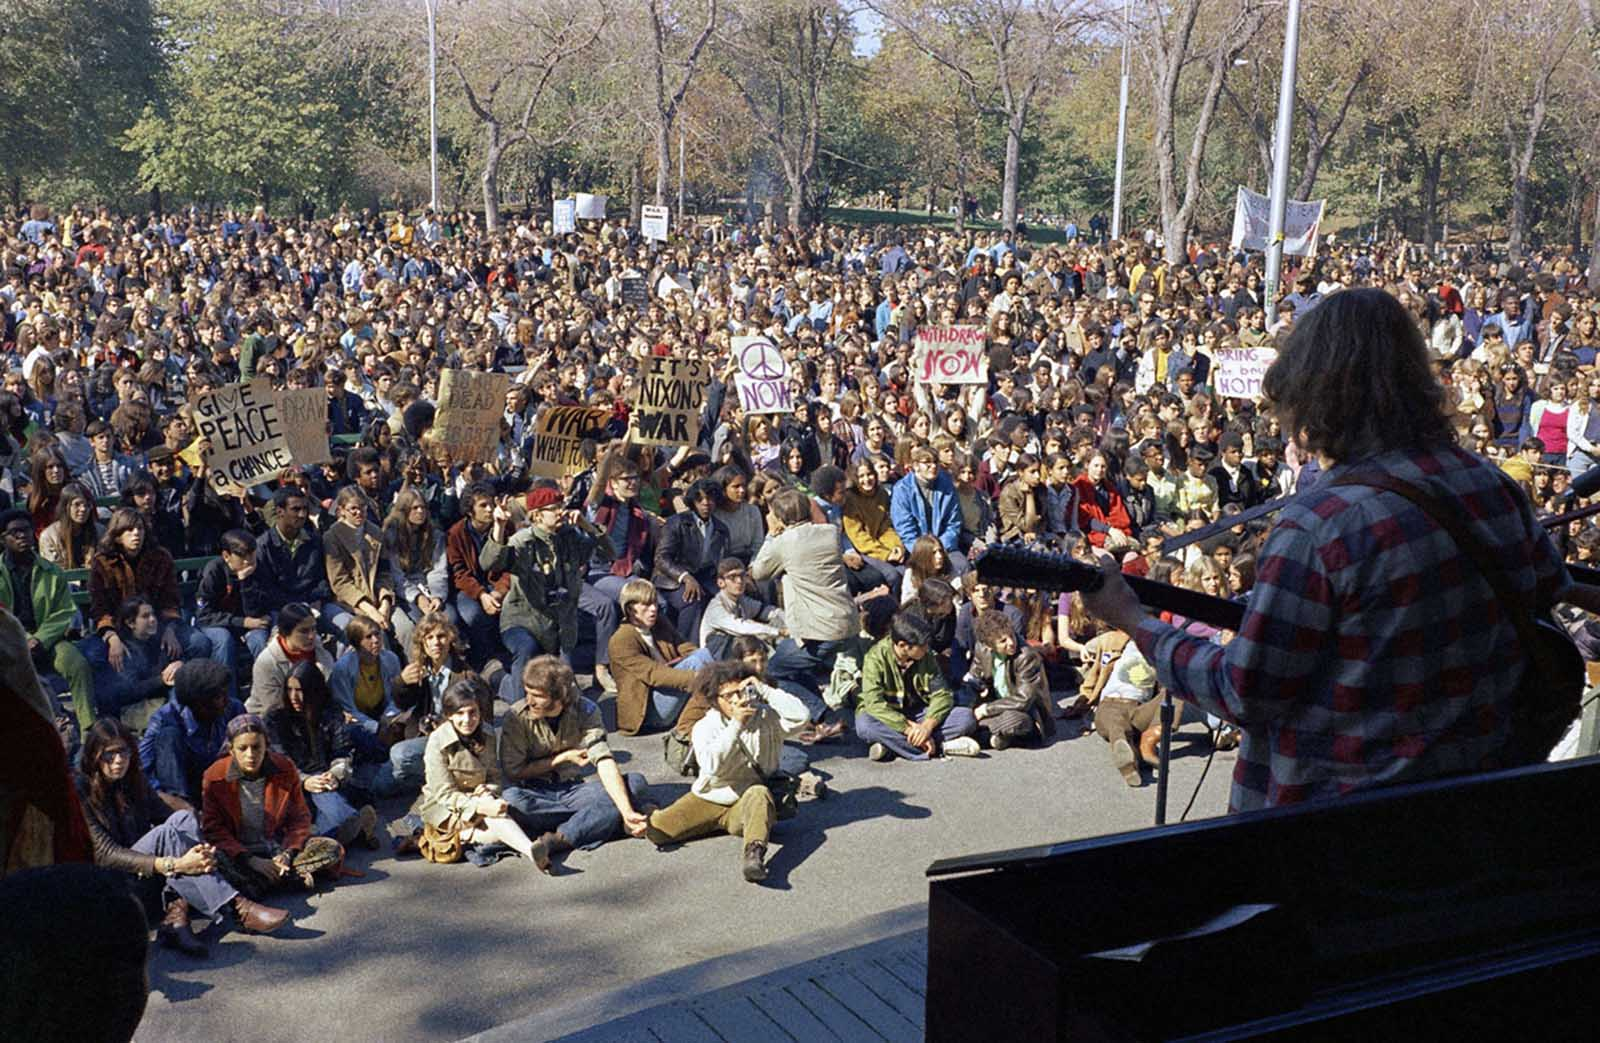 Demonstrators listen to a performer in Central Park on Moratorium Day, October 15, 1969. Moratorium Day was a mass demonstration and teach-in staged across the United States, in protest against continued American involvement in Vietnam.